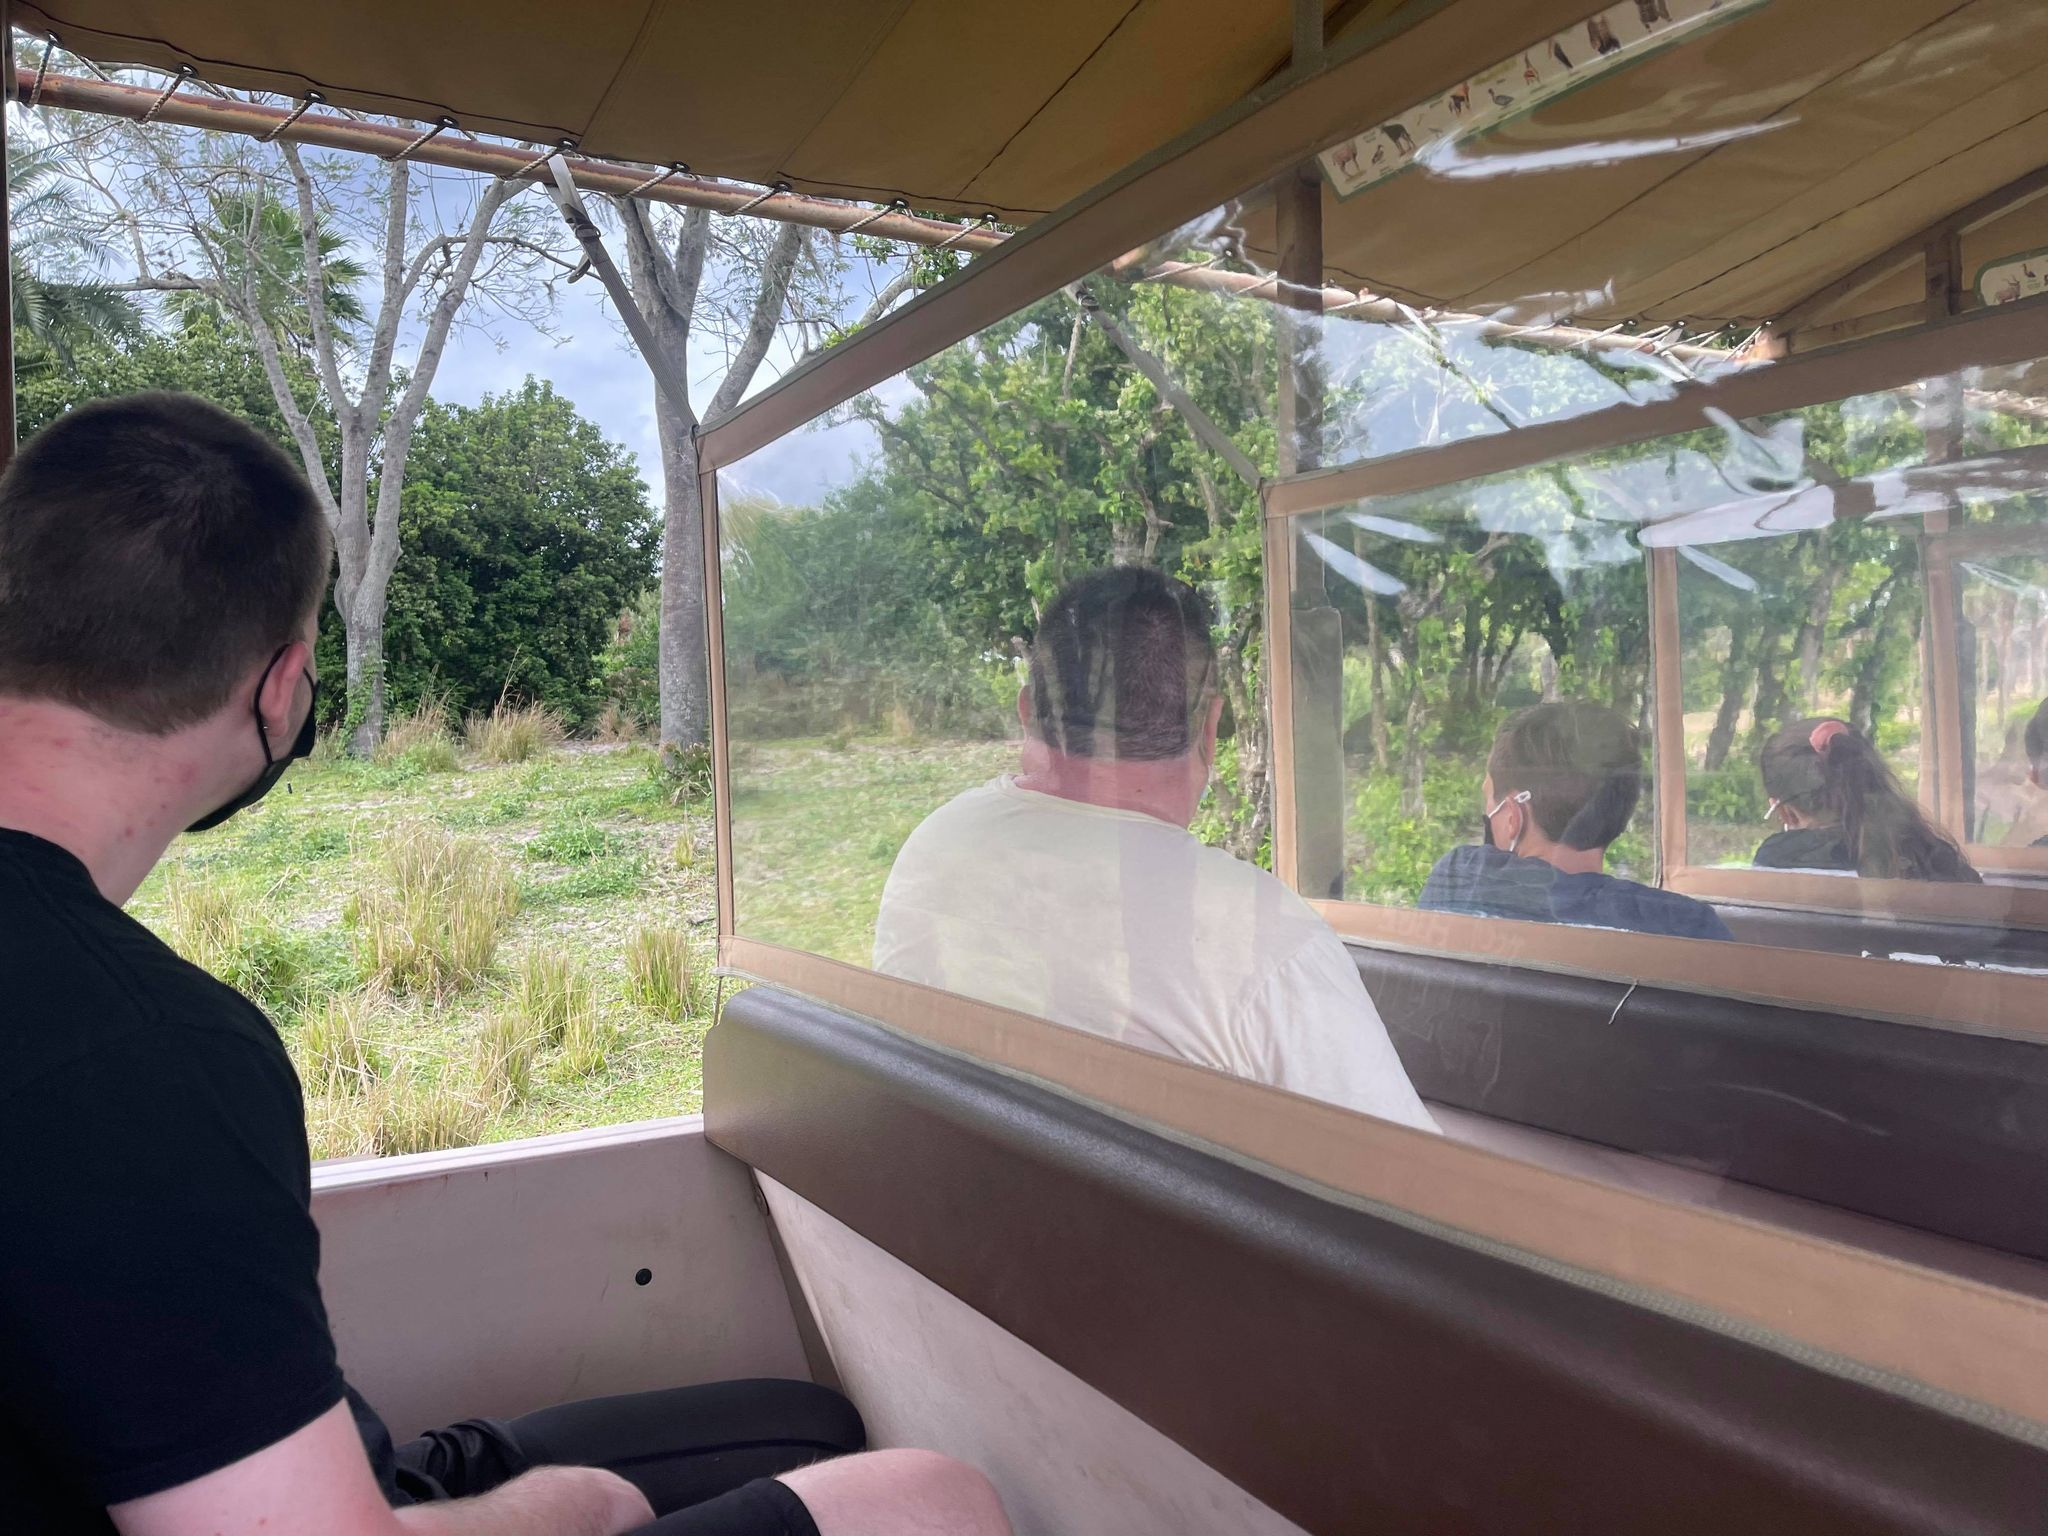 Kilimanjarol Safaris Animal Kingdom Disney World ride car with dividers due to COVID safety